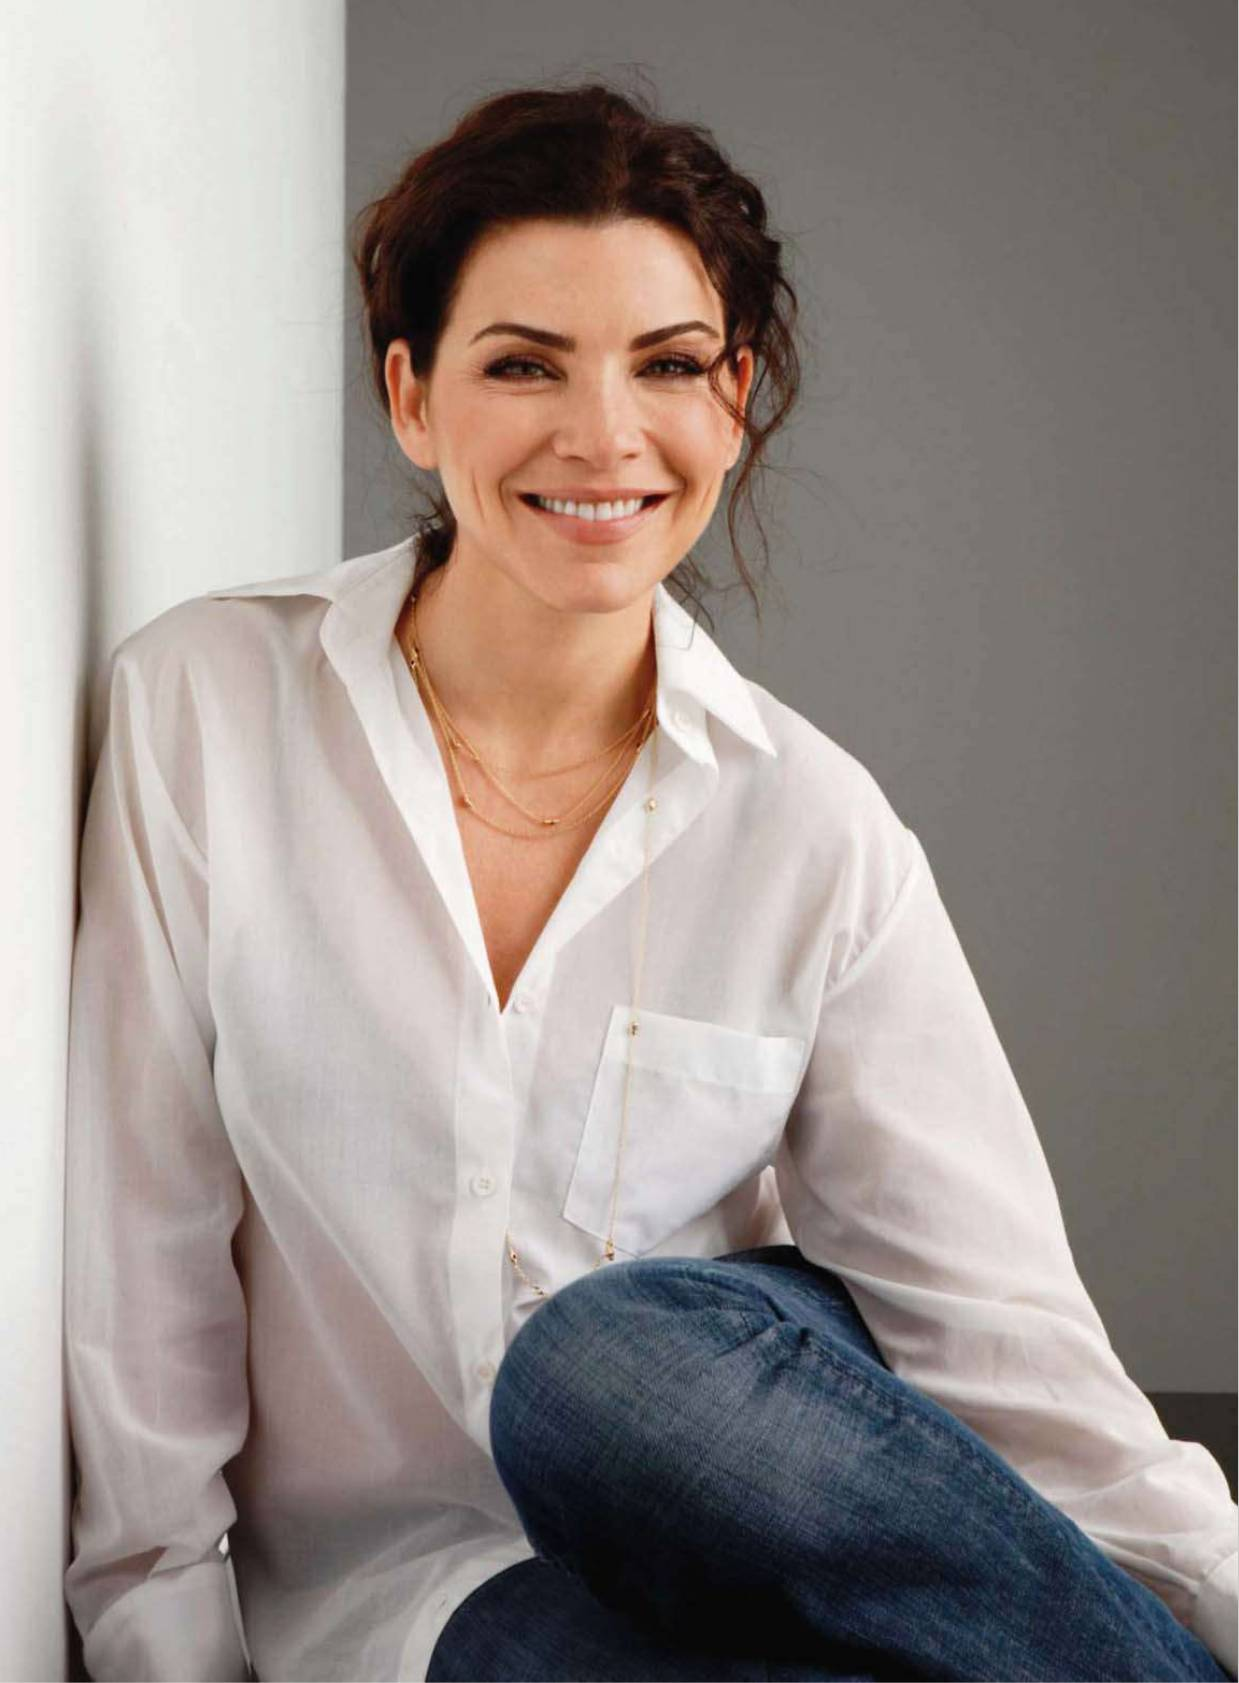 julianna margulies vk